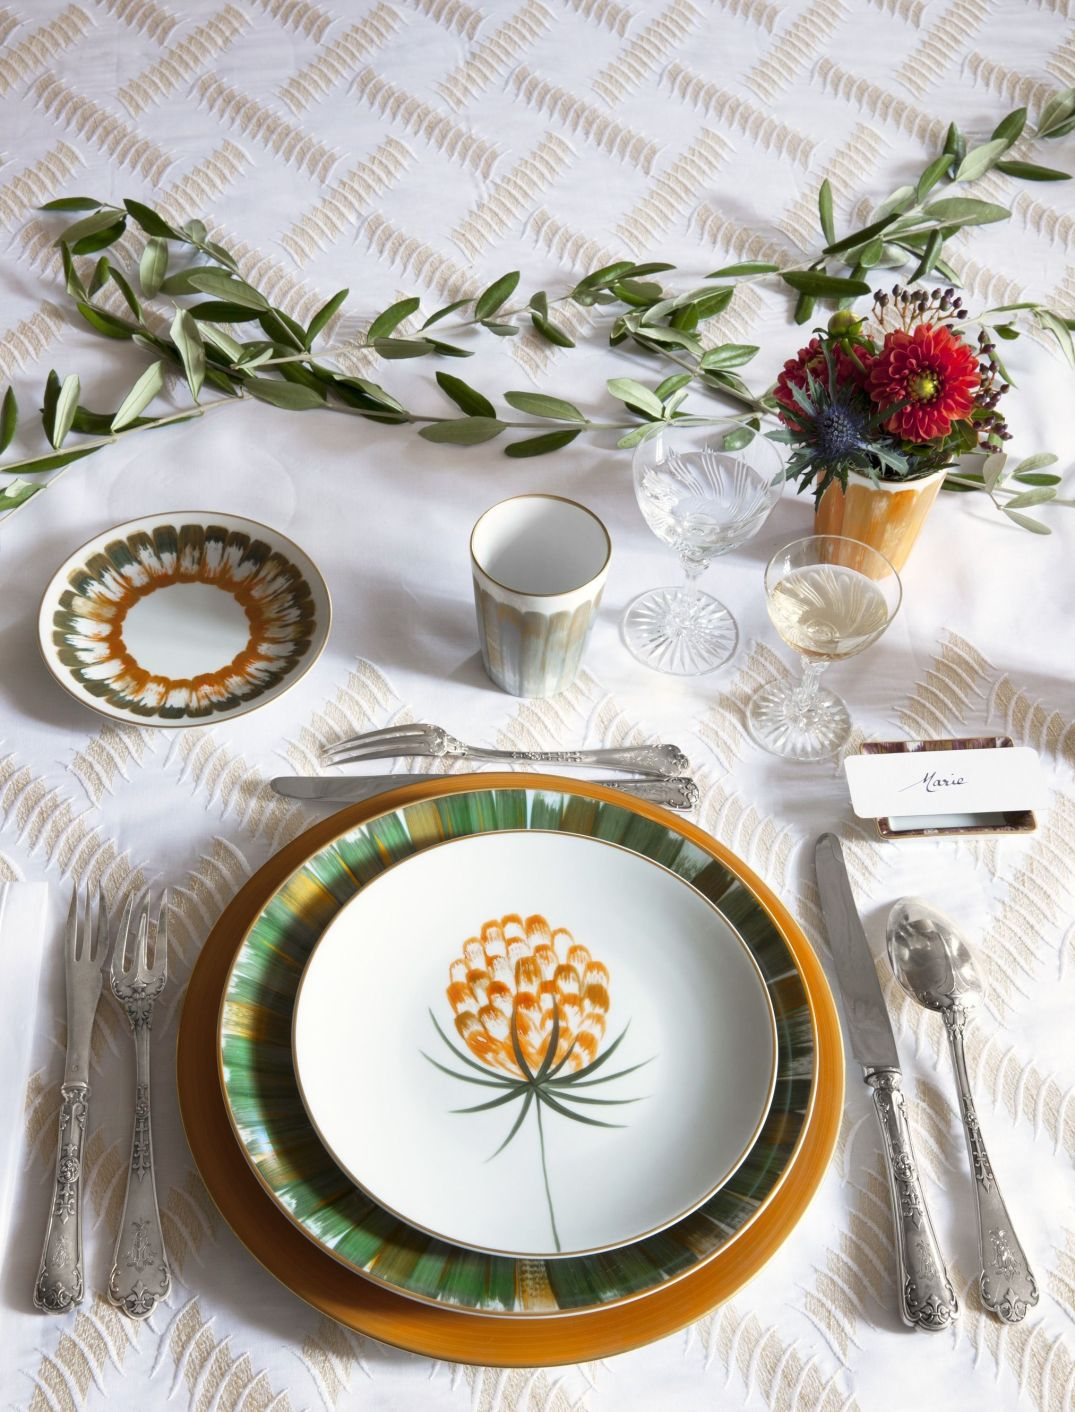 1478557386-holiday-place-setting-orange